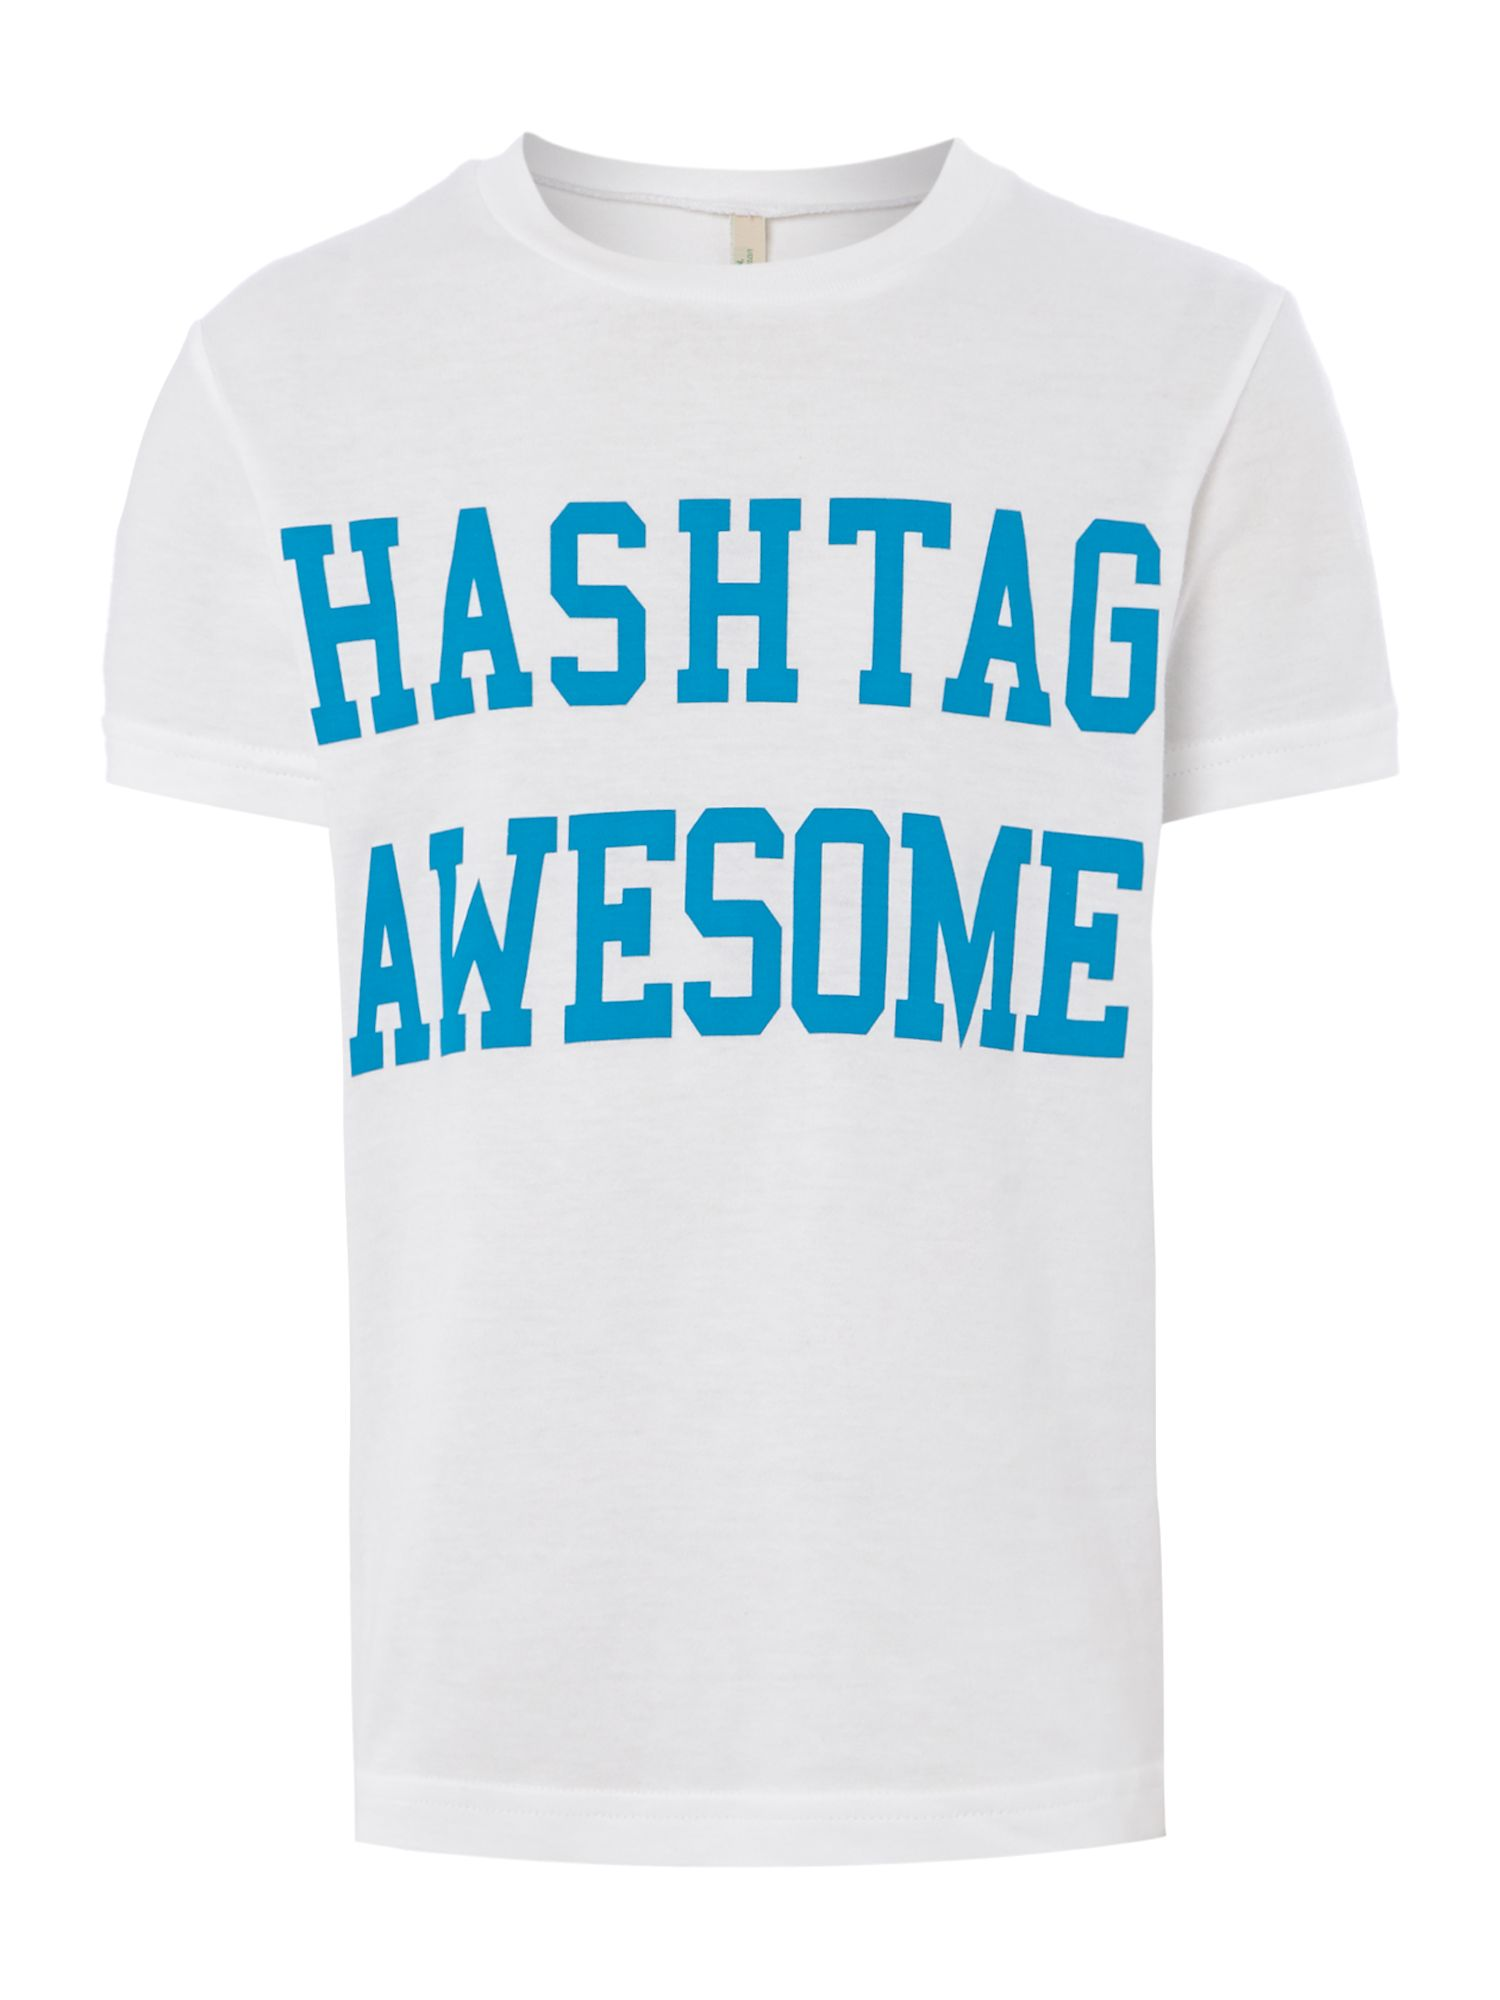 Boys hashtag awesome t-shrt